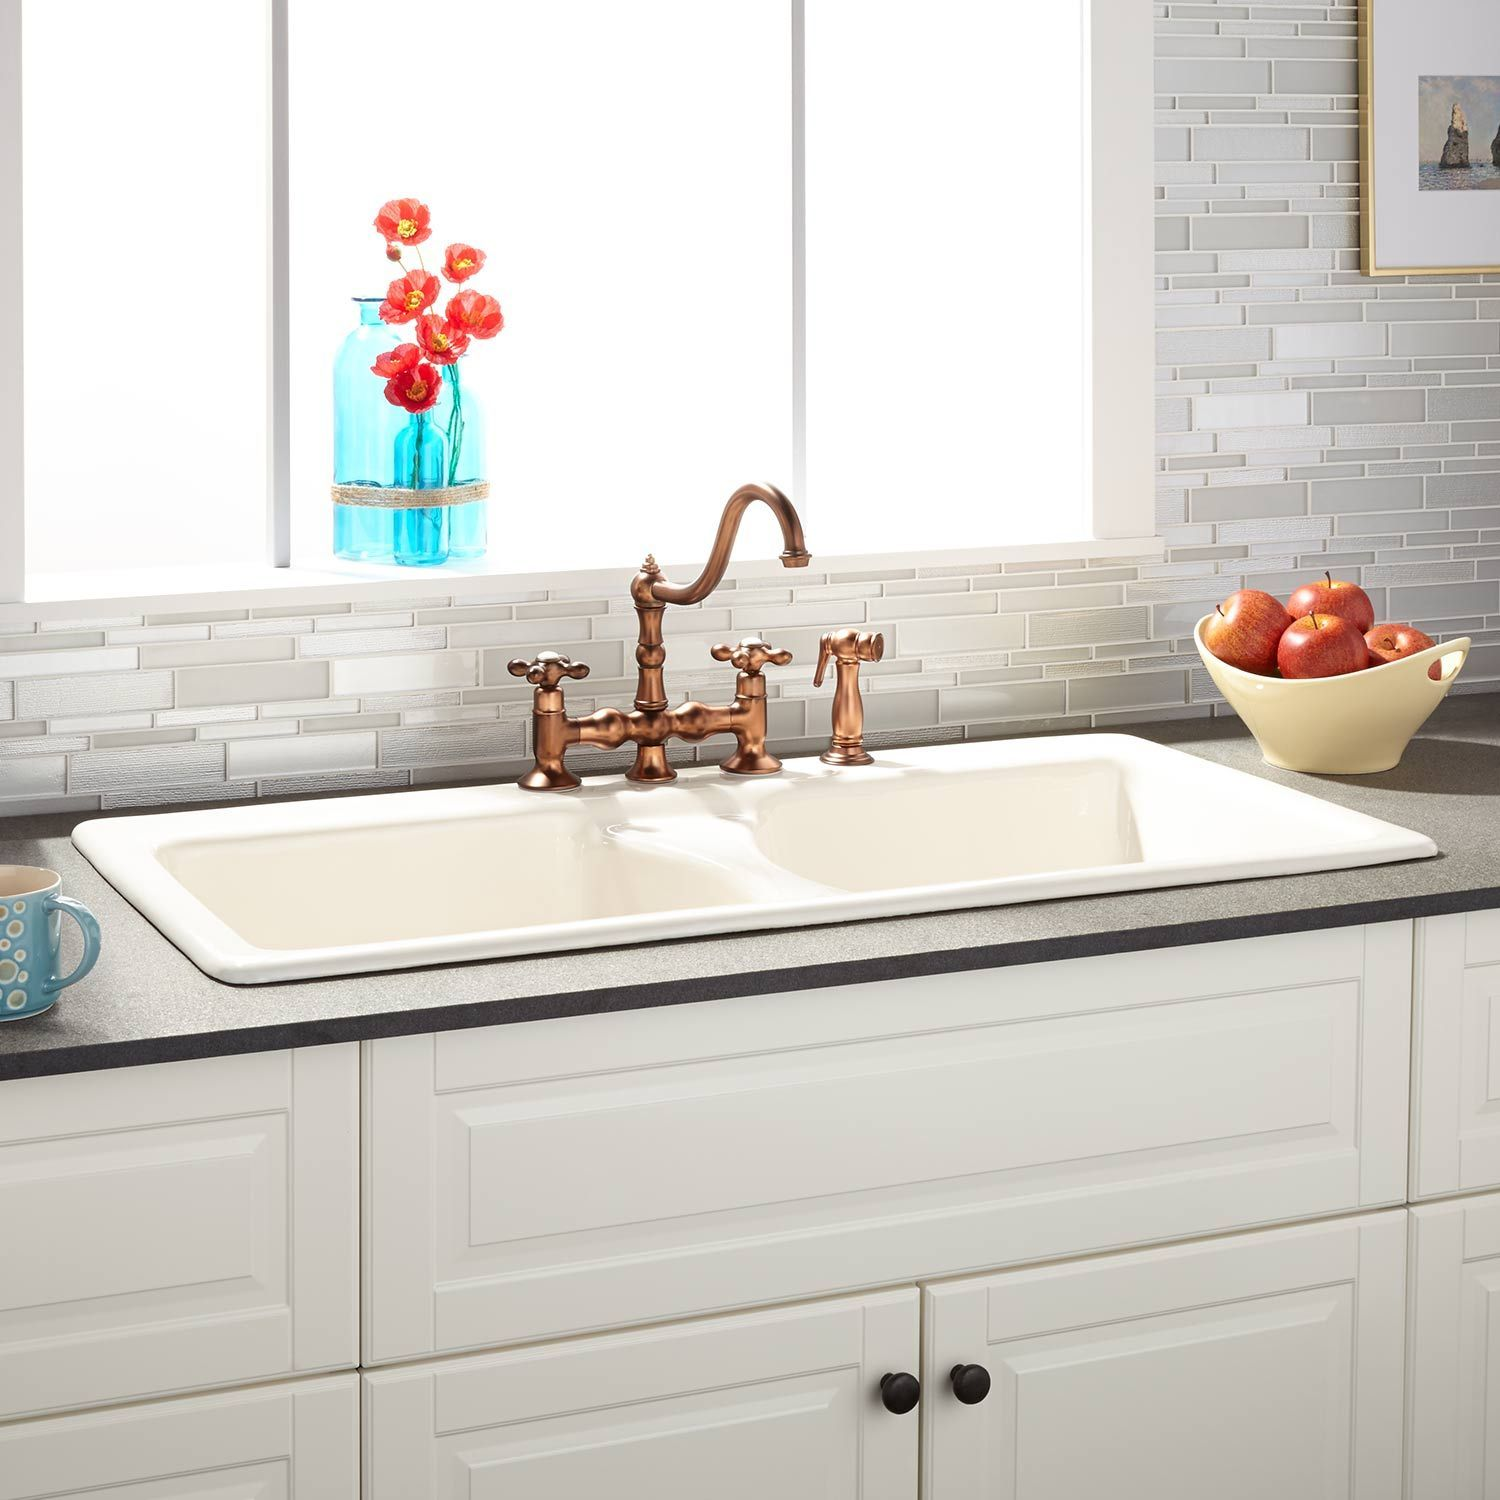 43 Selkirk Double Bowl Cast Iron Drop In Kitchen Sink Biscuit Drop In Kitchen Sink Kitchen Sink Remodel Cast Iron Kitchen Sinks